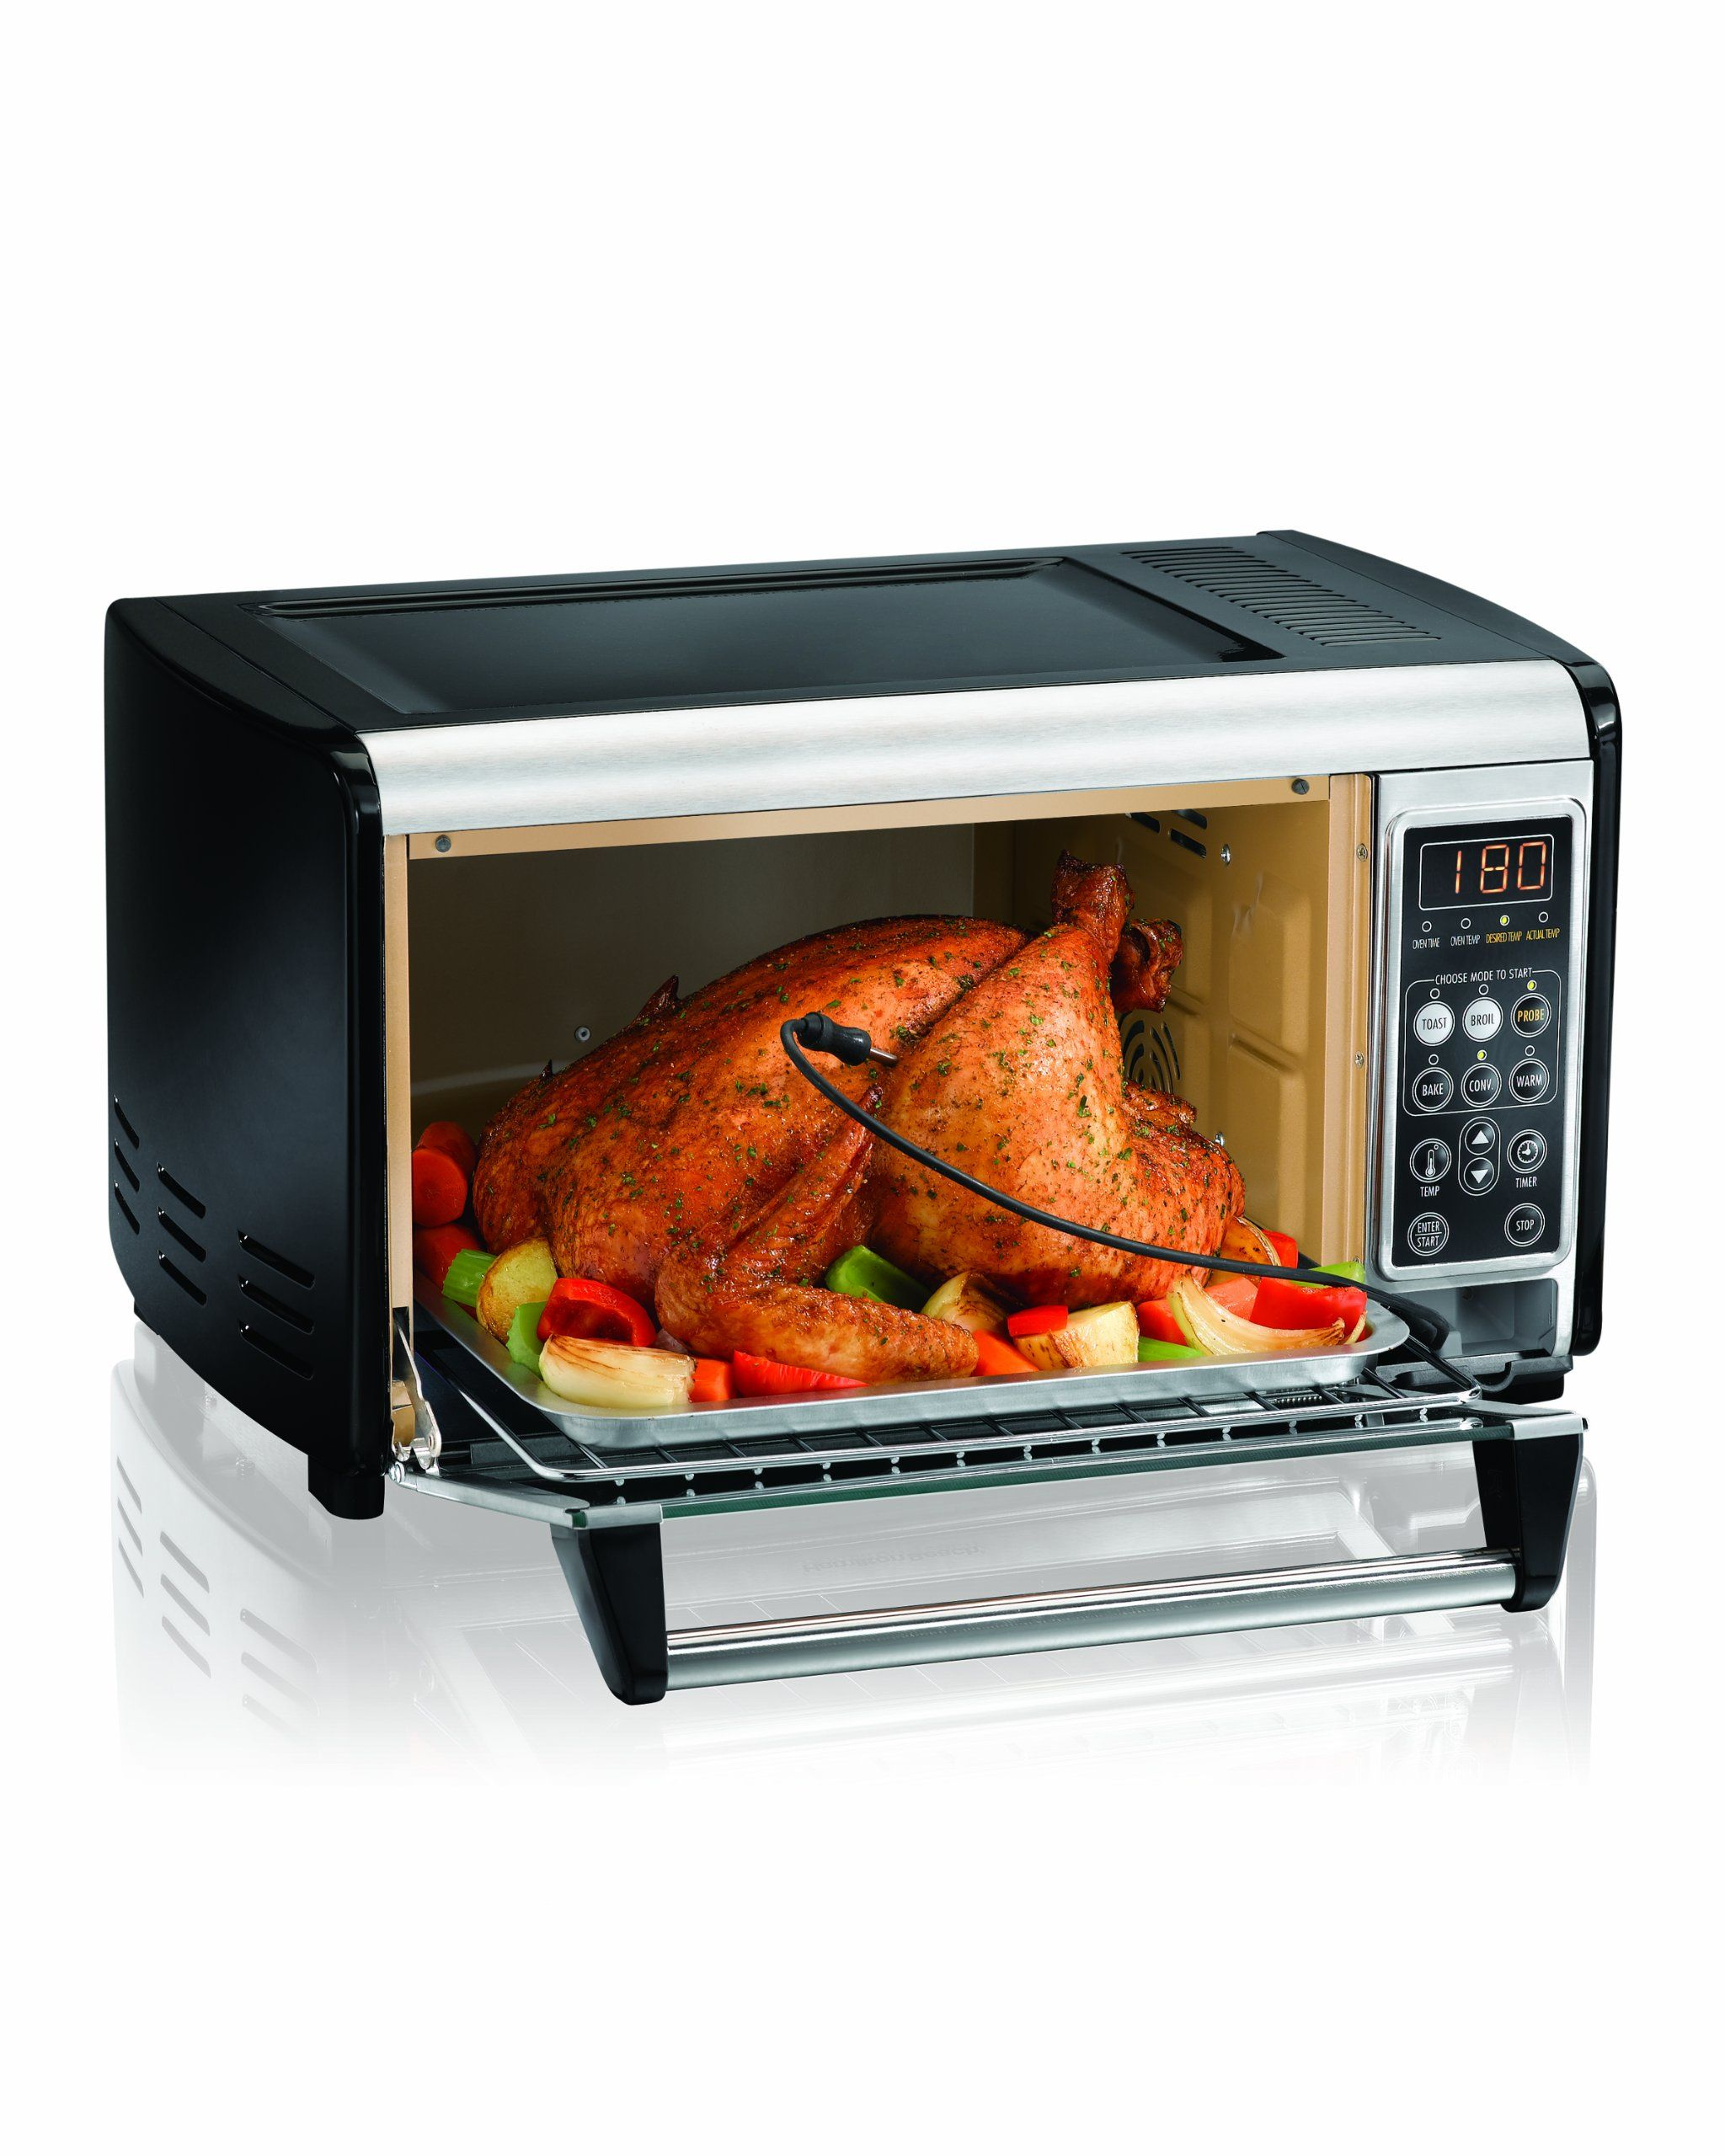 Newest America Test Kitchen Toaster Oven Sale Off 59